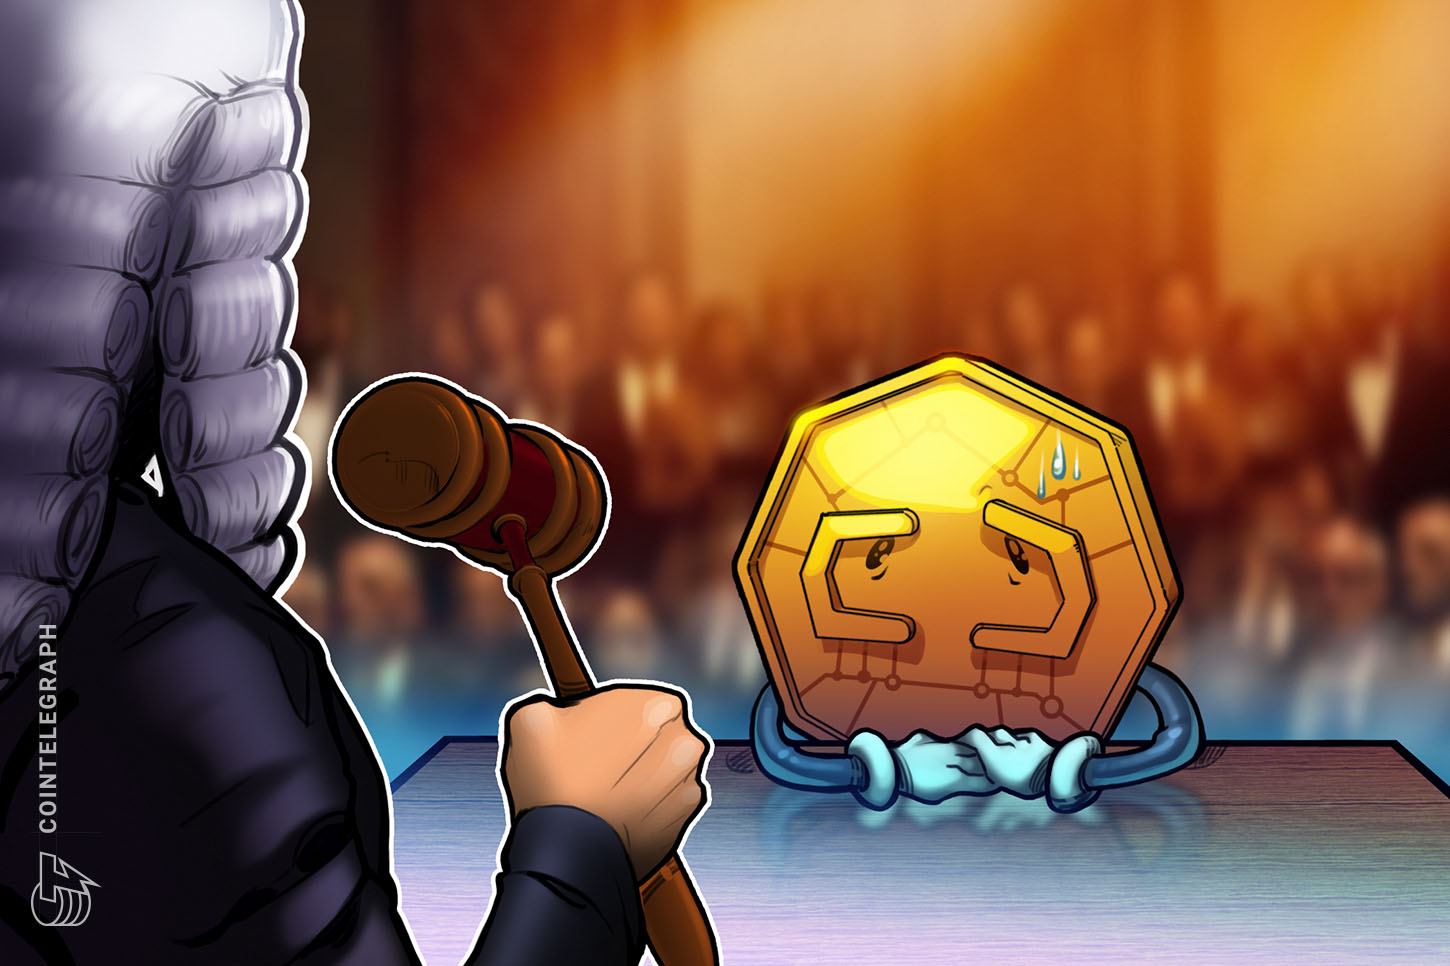 Texas alleges that BlockFi is offering unregistered securities